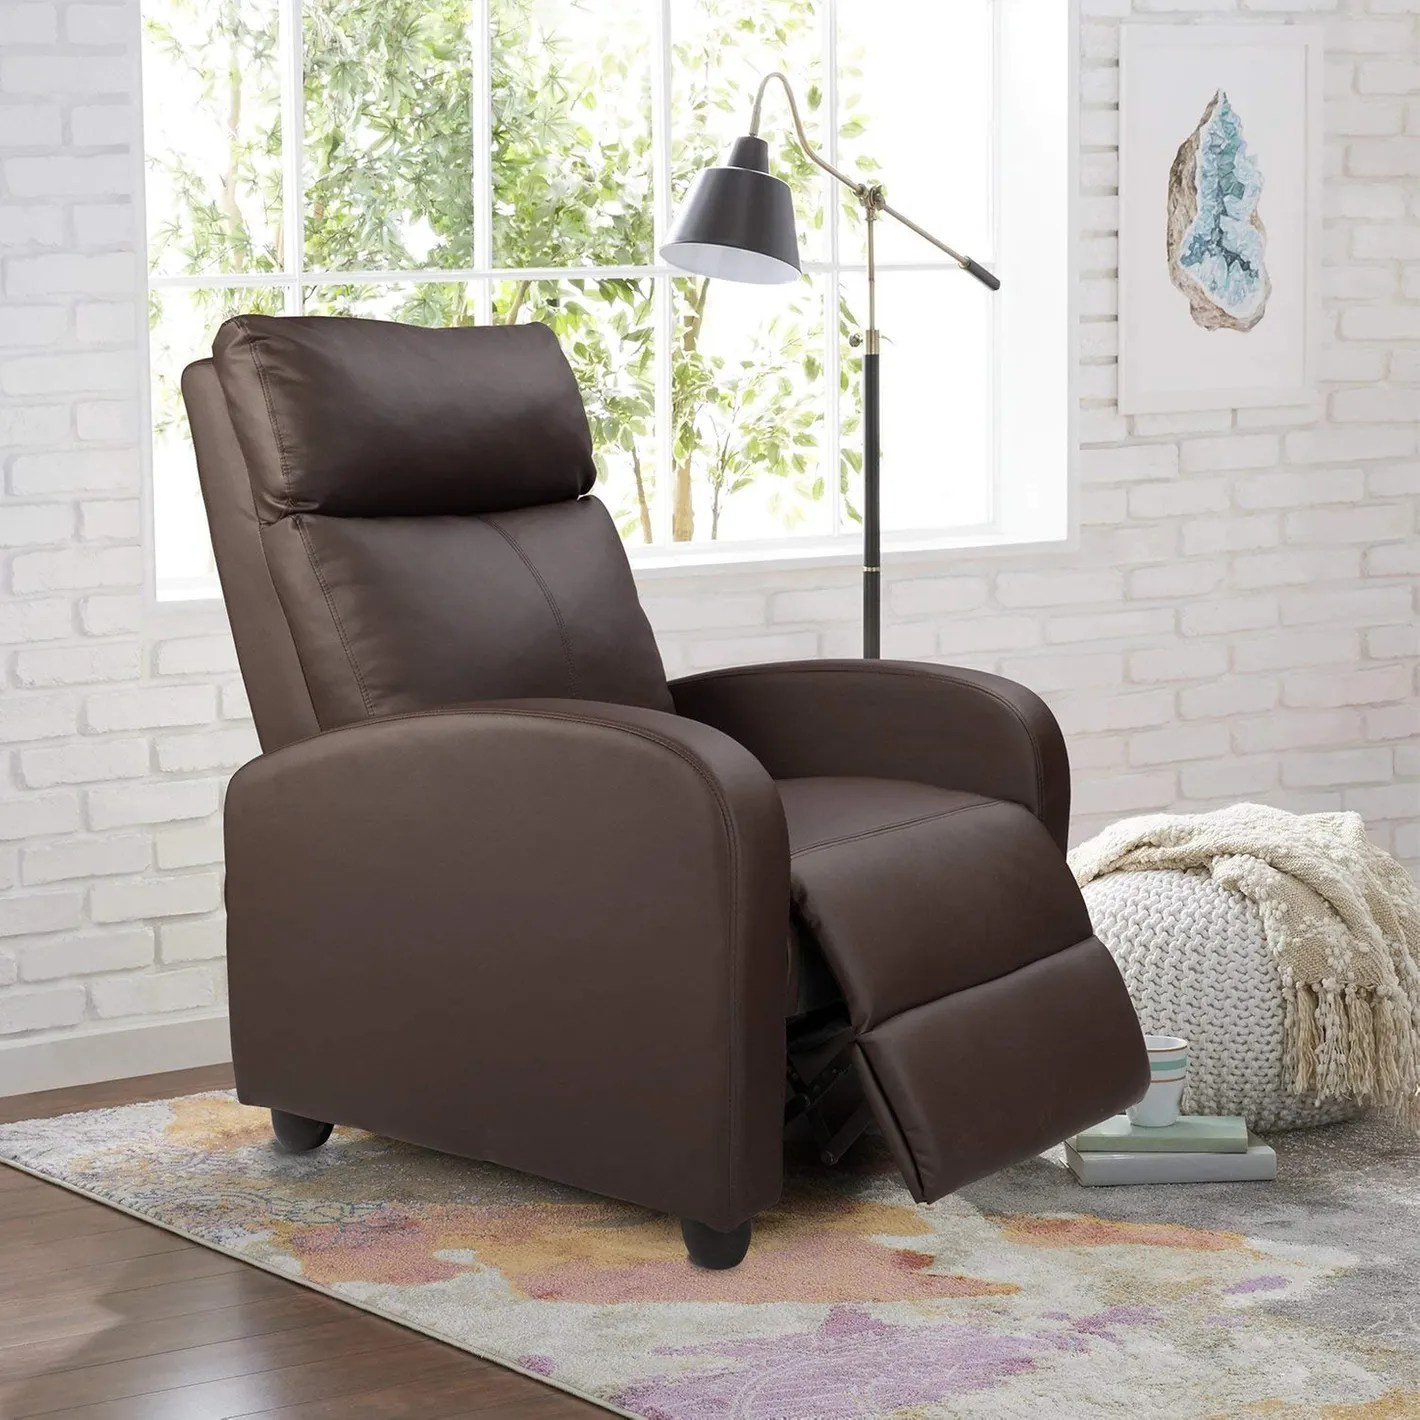 Stressless Amazon 9 Best Lounge Chairs With Back Support 2018